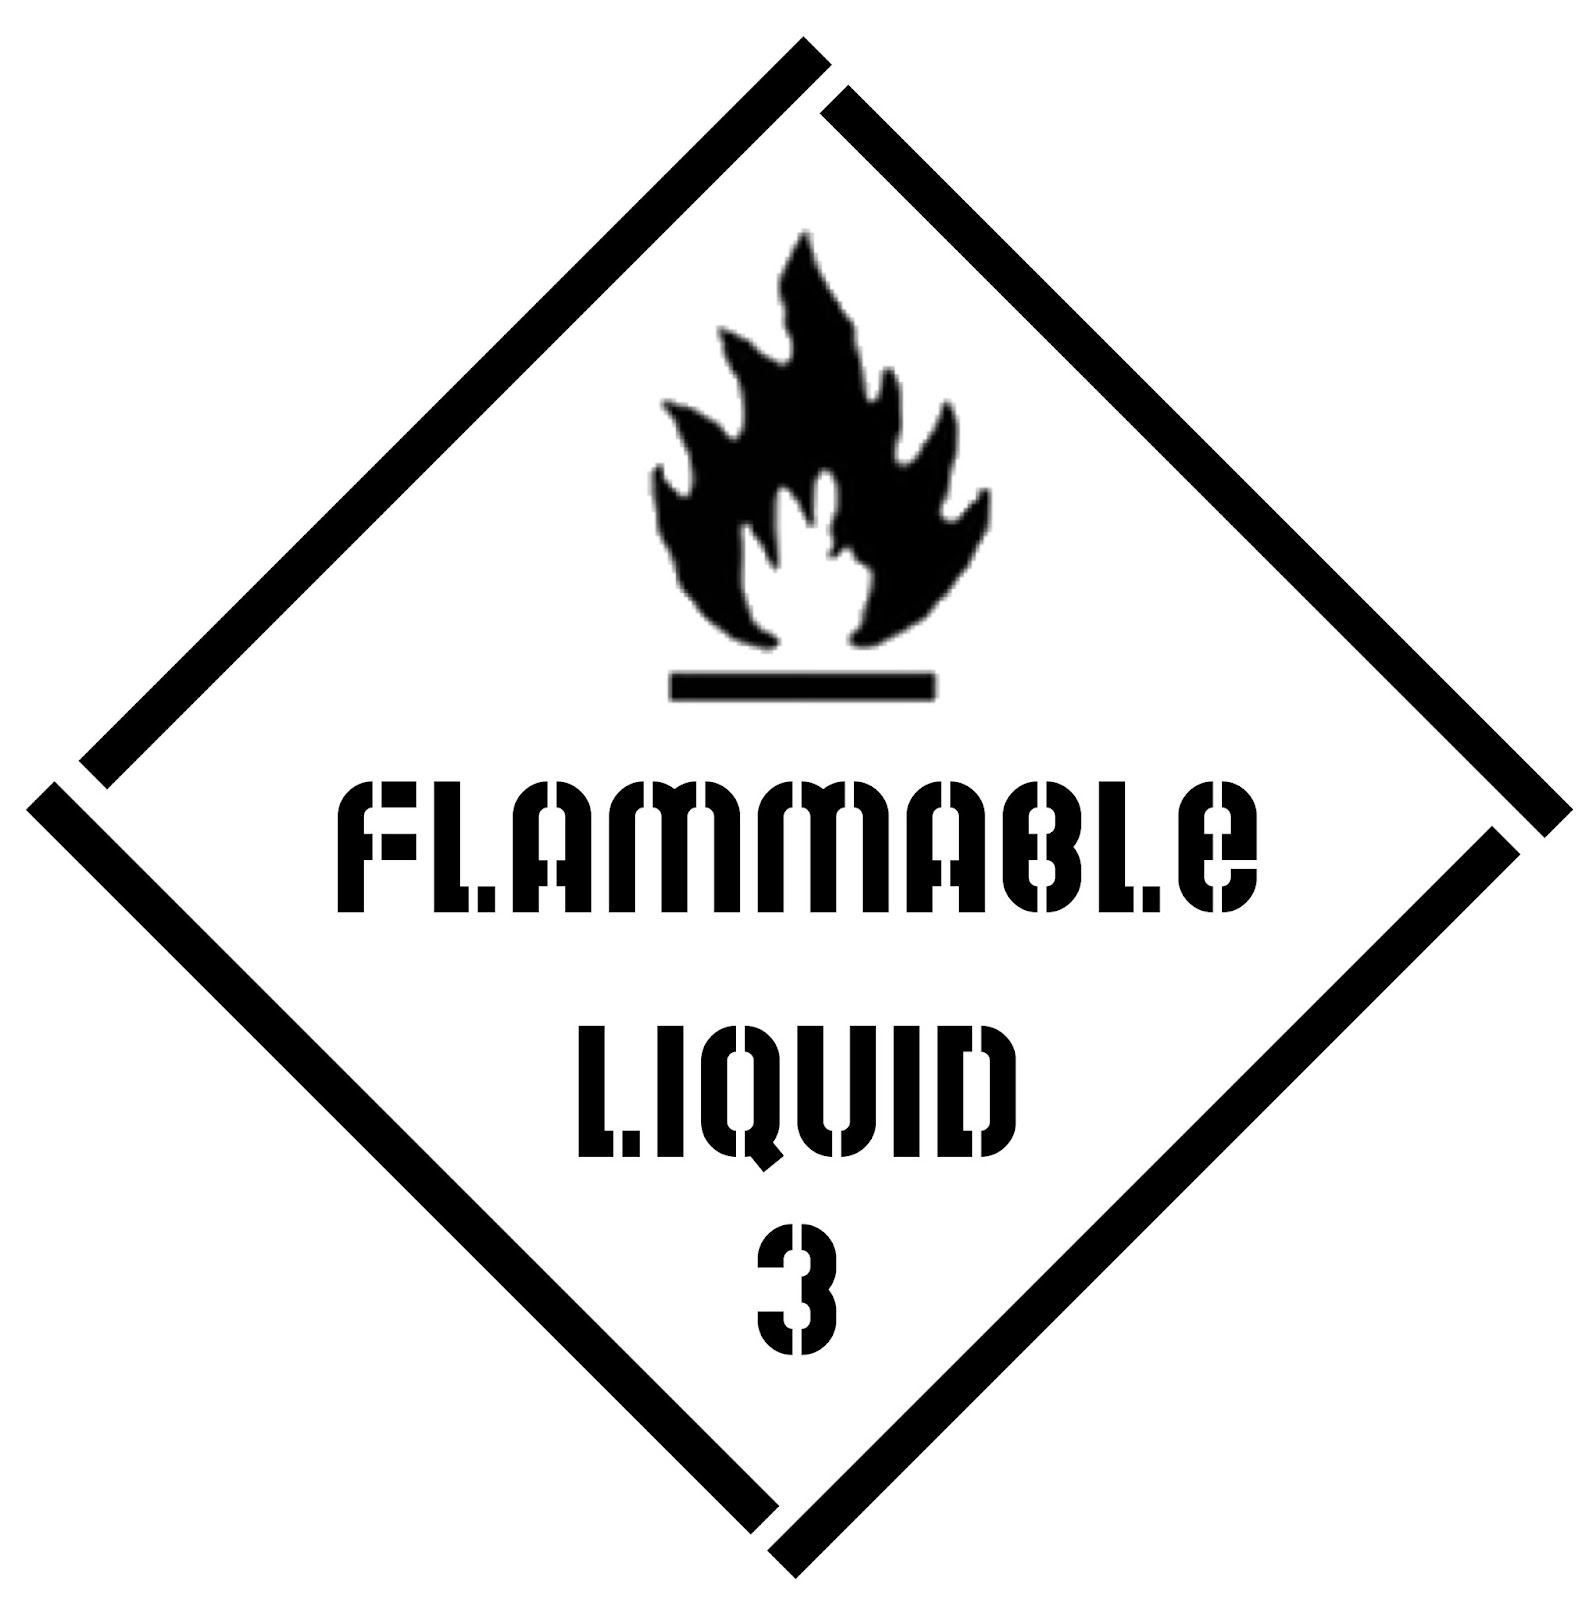 flammable liquid stencil.jpg